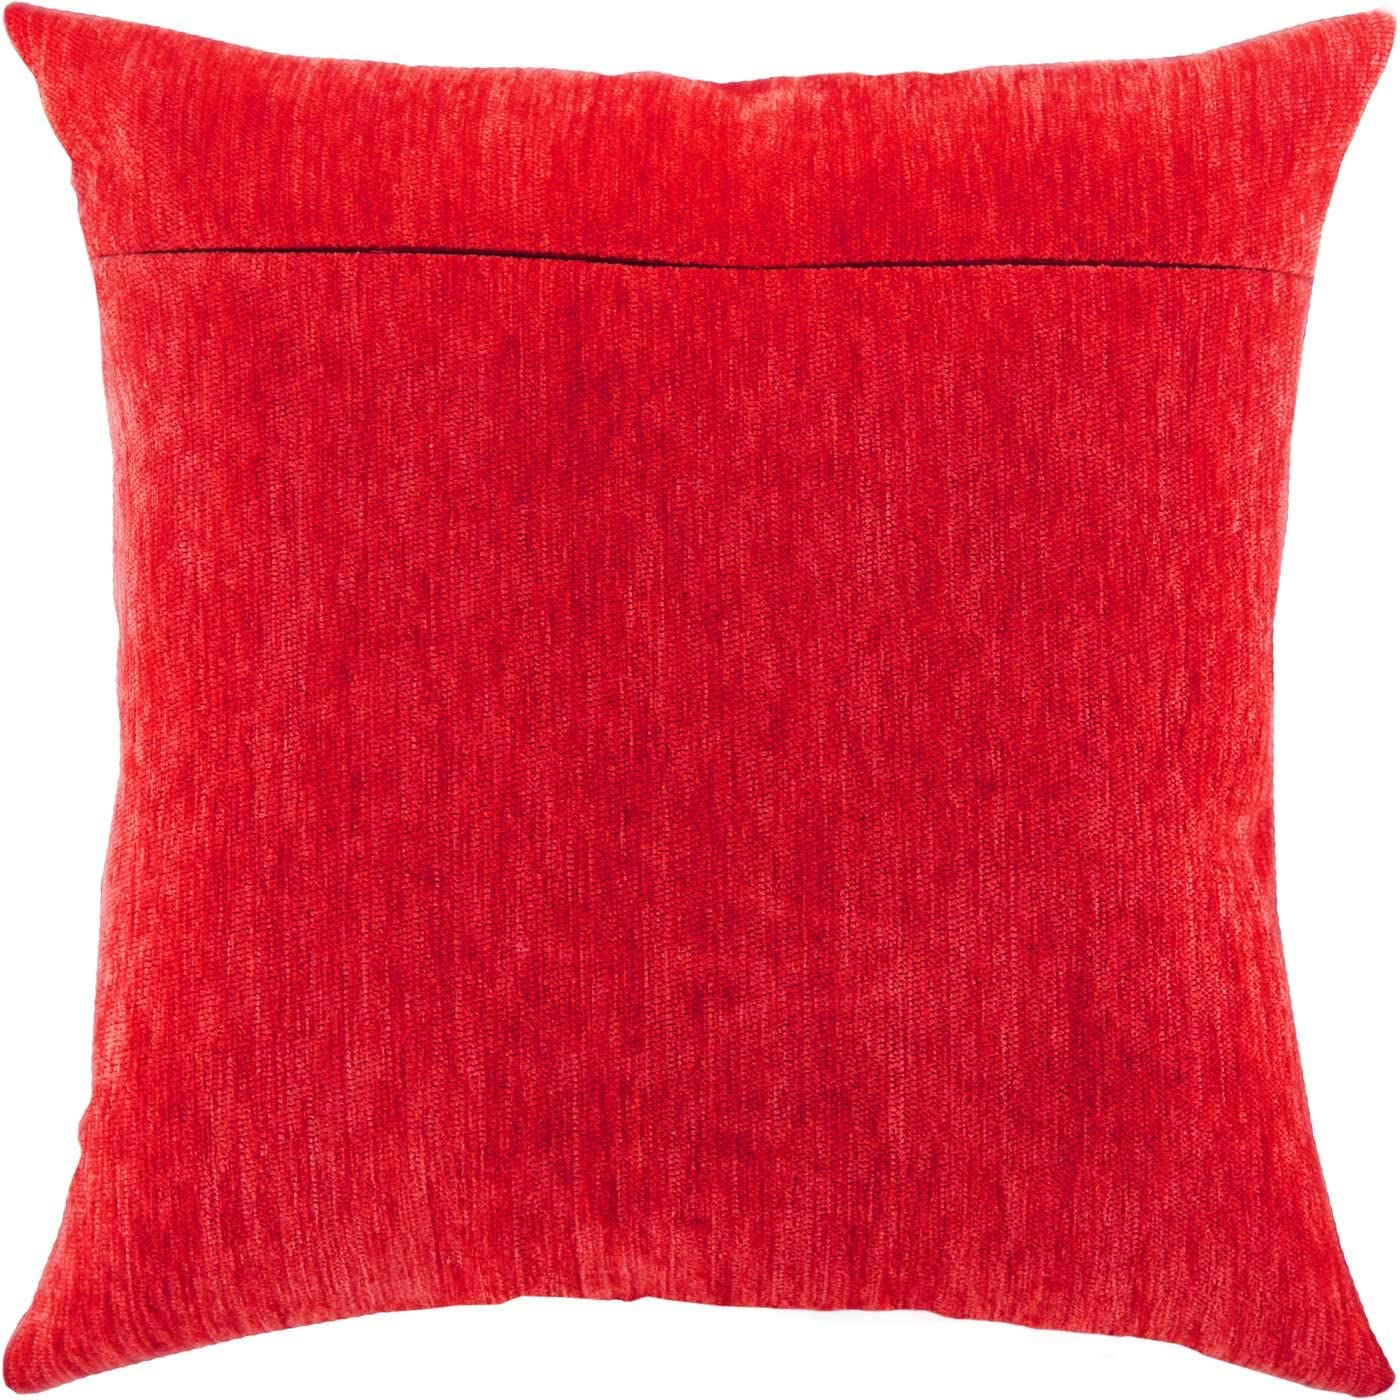 with Zipper Merlot from Europe Pink Chinnelly Backing for Throw Pillow Kits 16 /× 16 inches